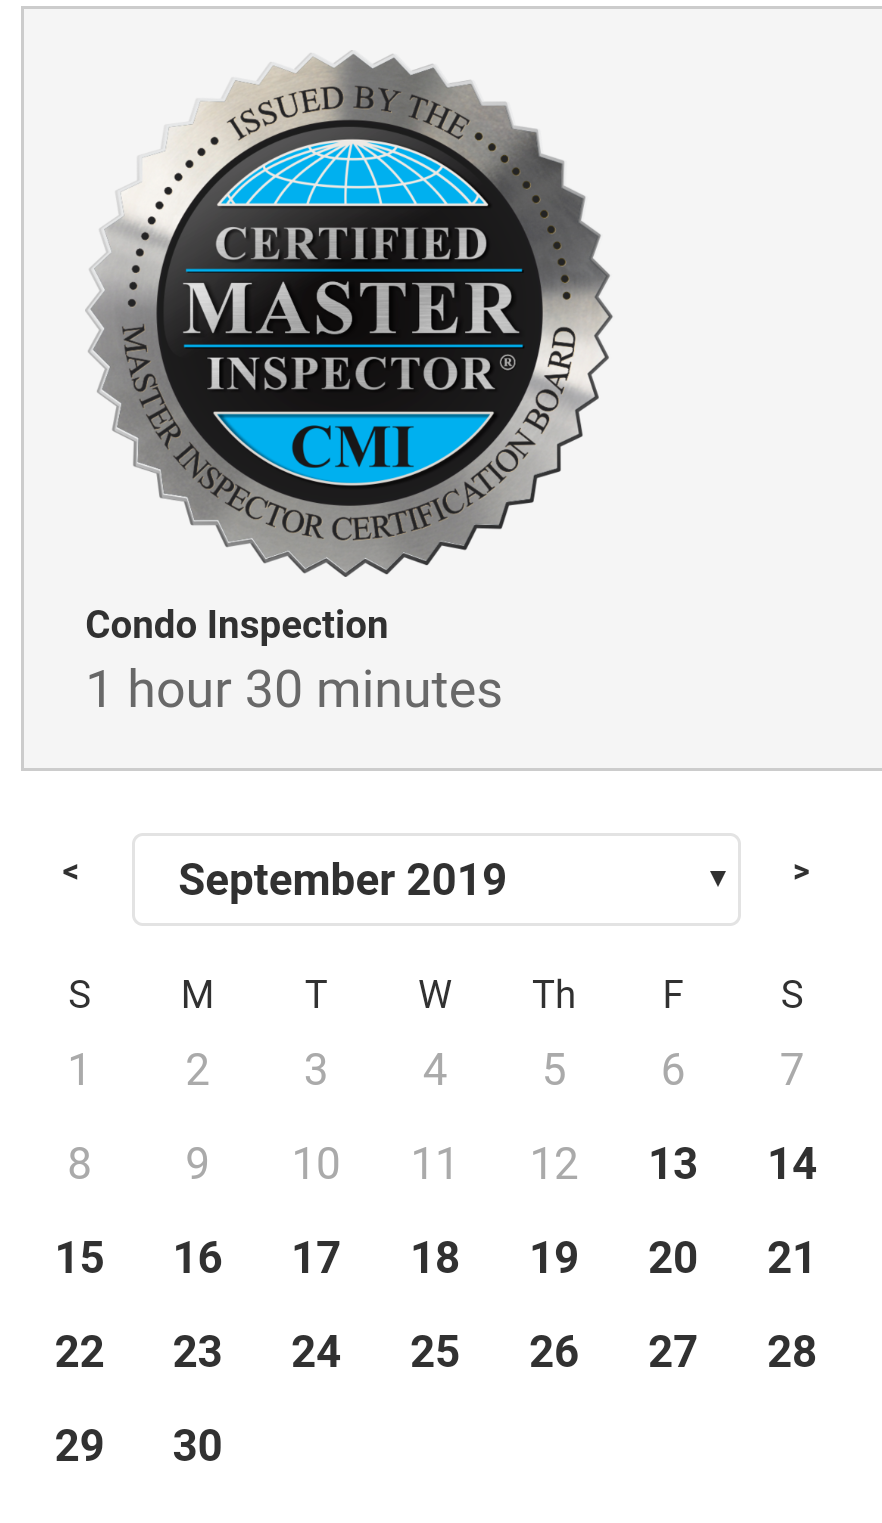 Clients love my online appointment system. Always working to make the home inspection process easy.   https://bit.ly/2kDyRHp